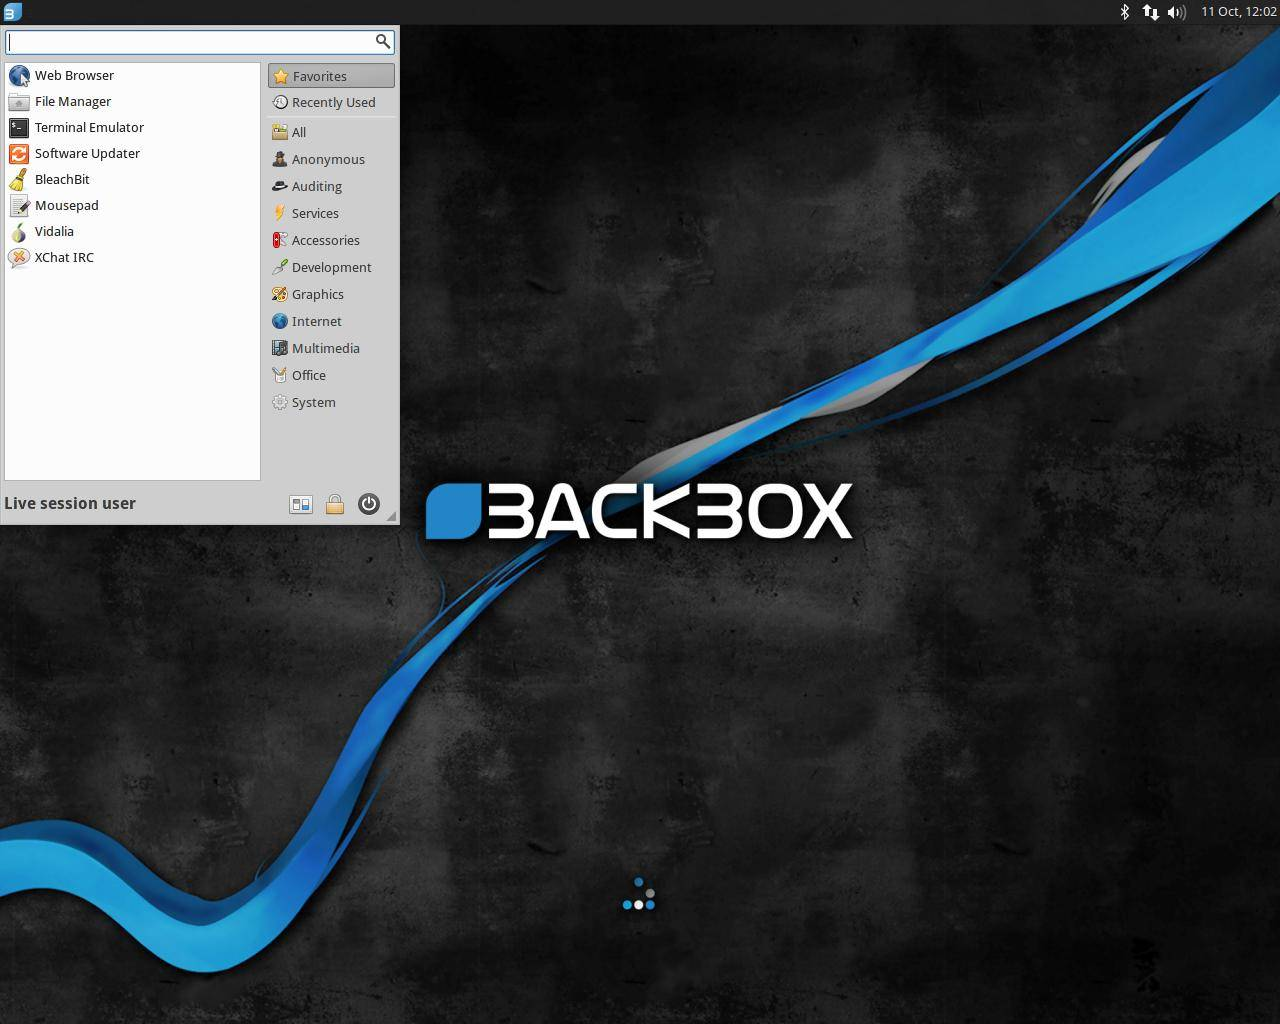 Ubuntu-based PenTest Linux Distribution: BackBox